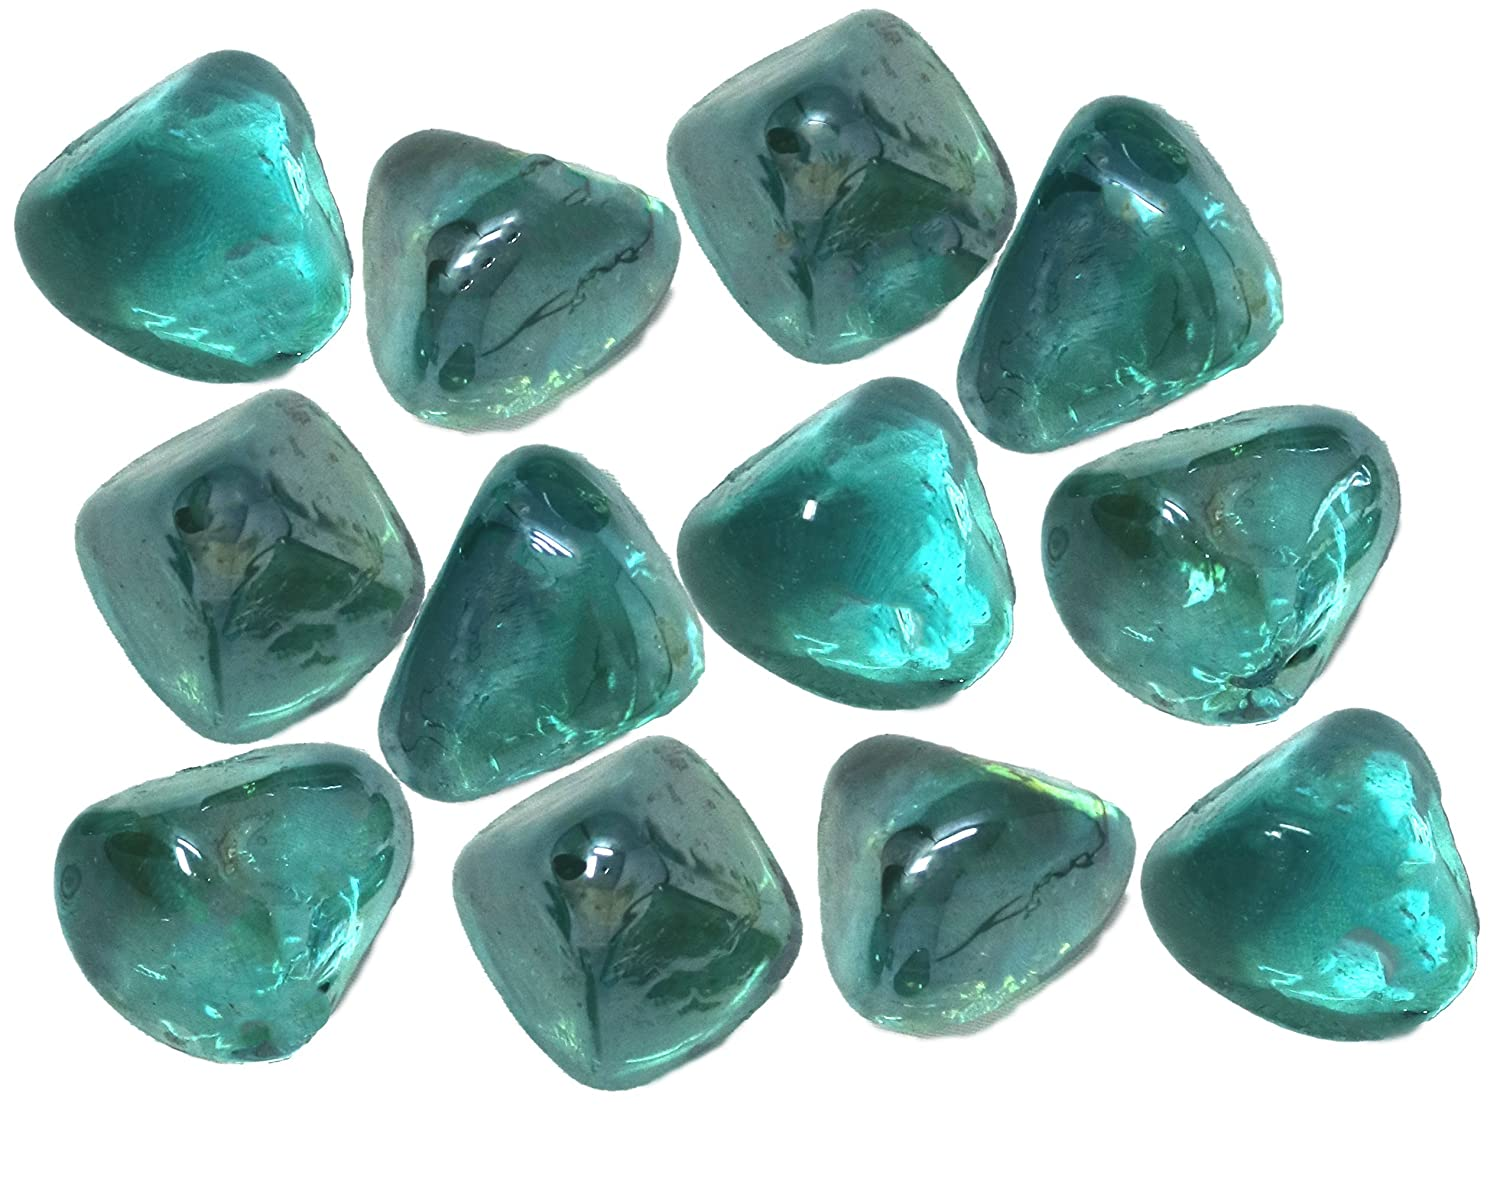 Distinctive Glass Jewel Gems for Vase Filler, Table Scatter or other Beautiful Accents (2.2 Pounds, Aquamarine) Ennvo Inc.